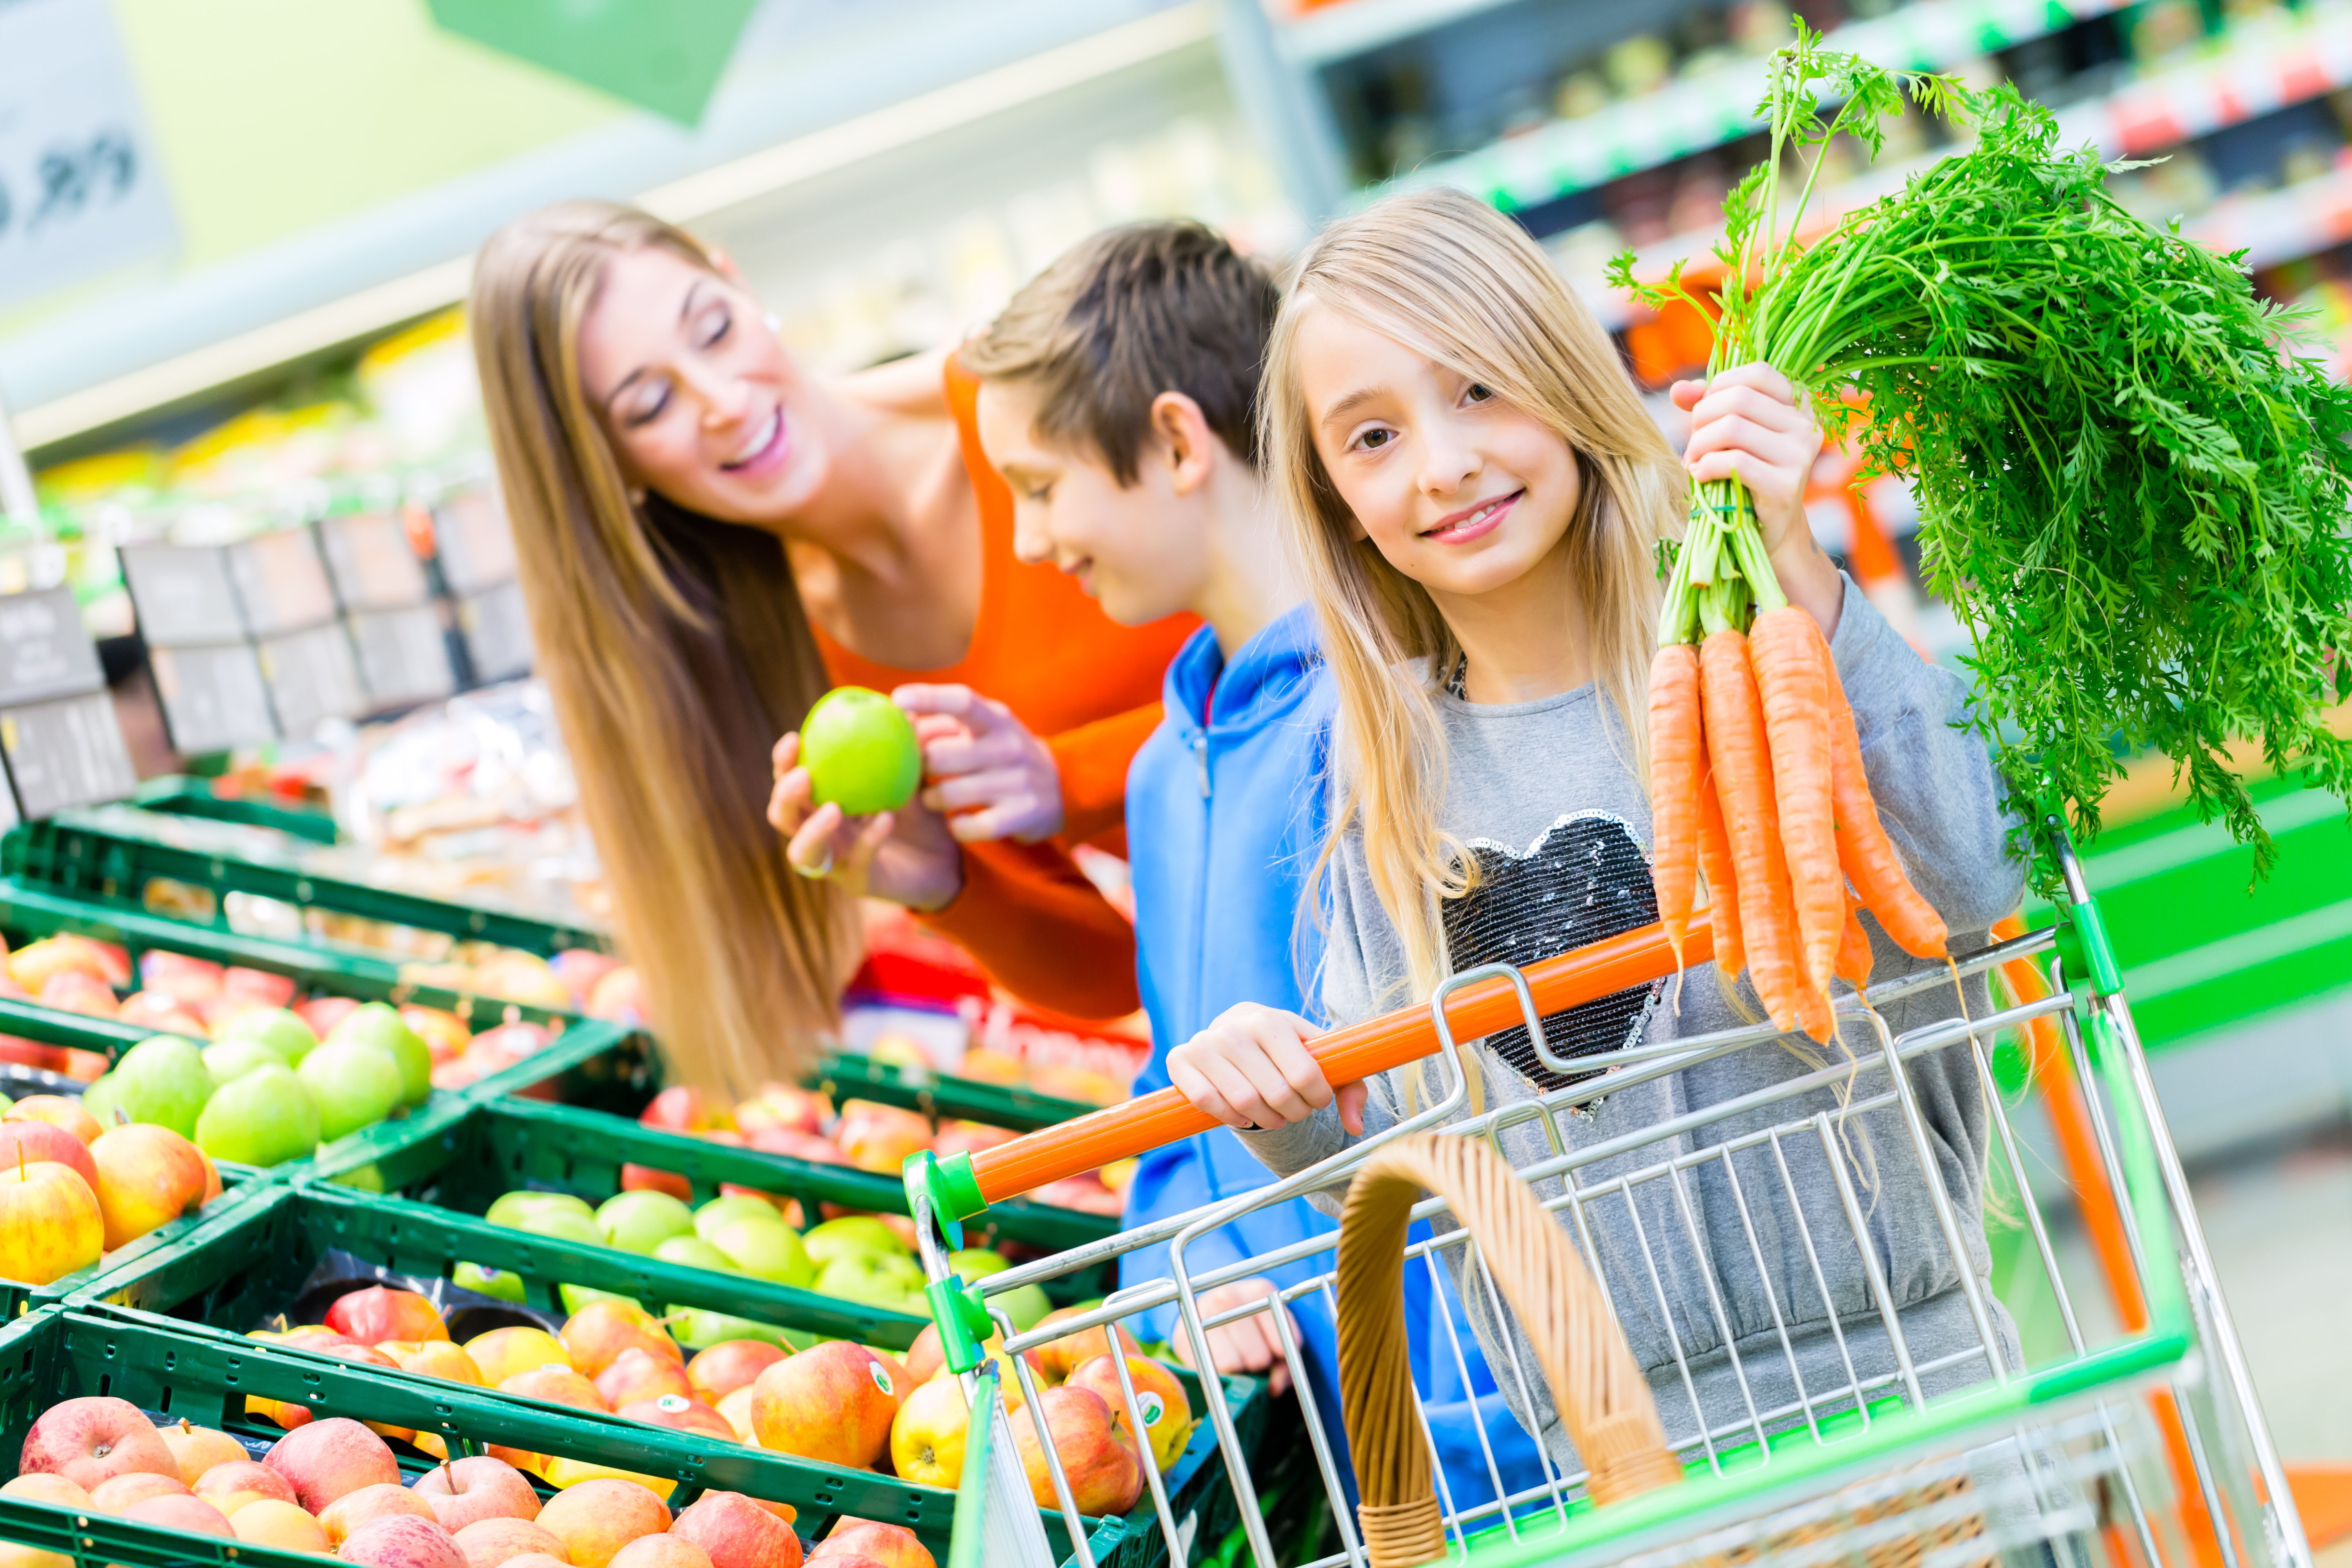 Grocery Shopping With Kids Inspire Them To Behave